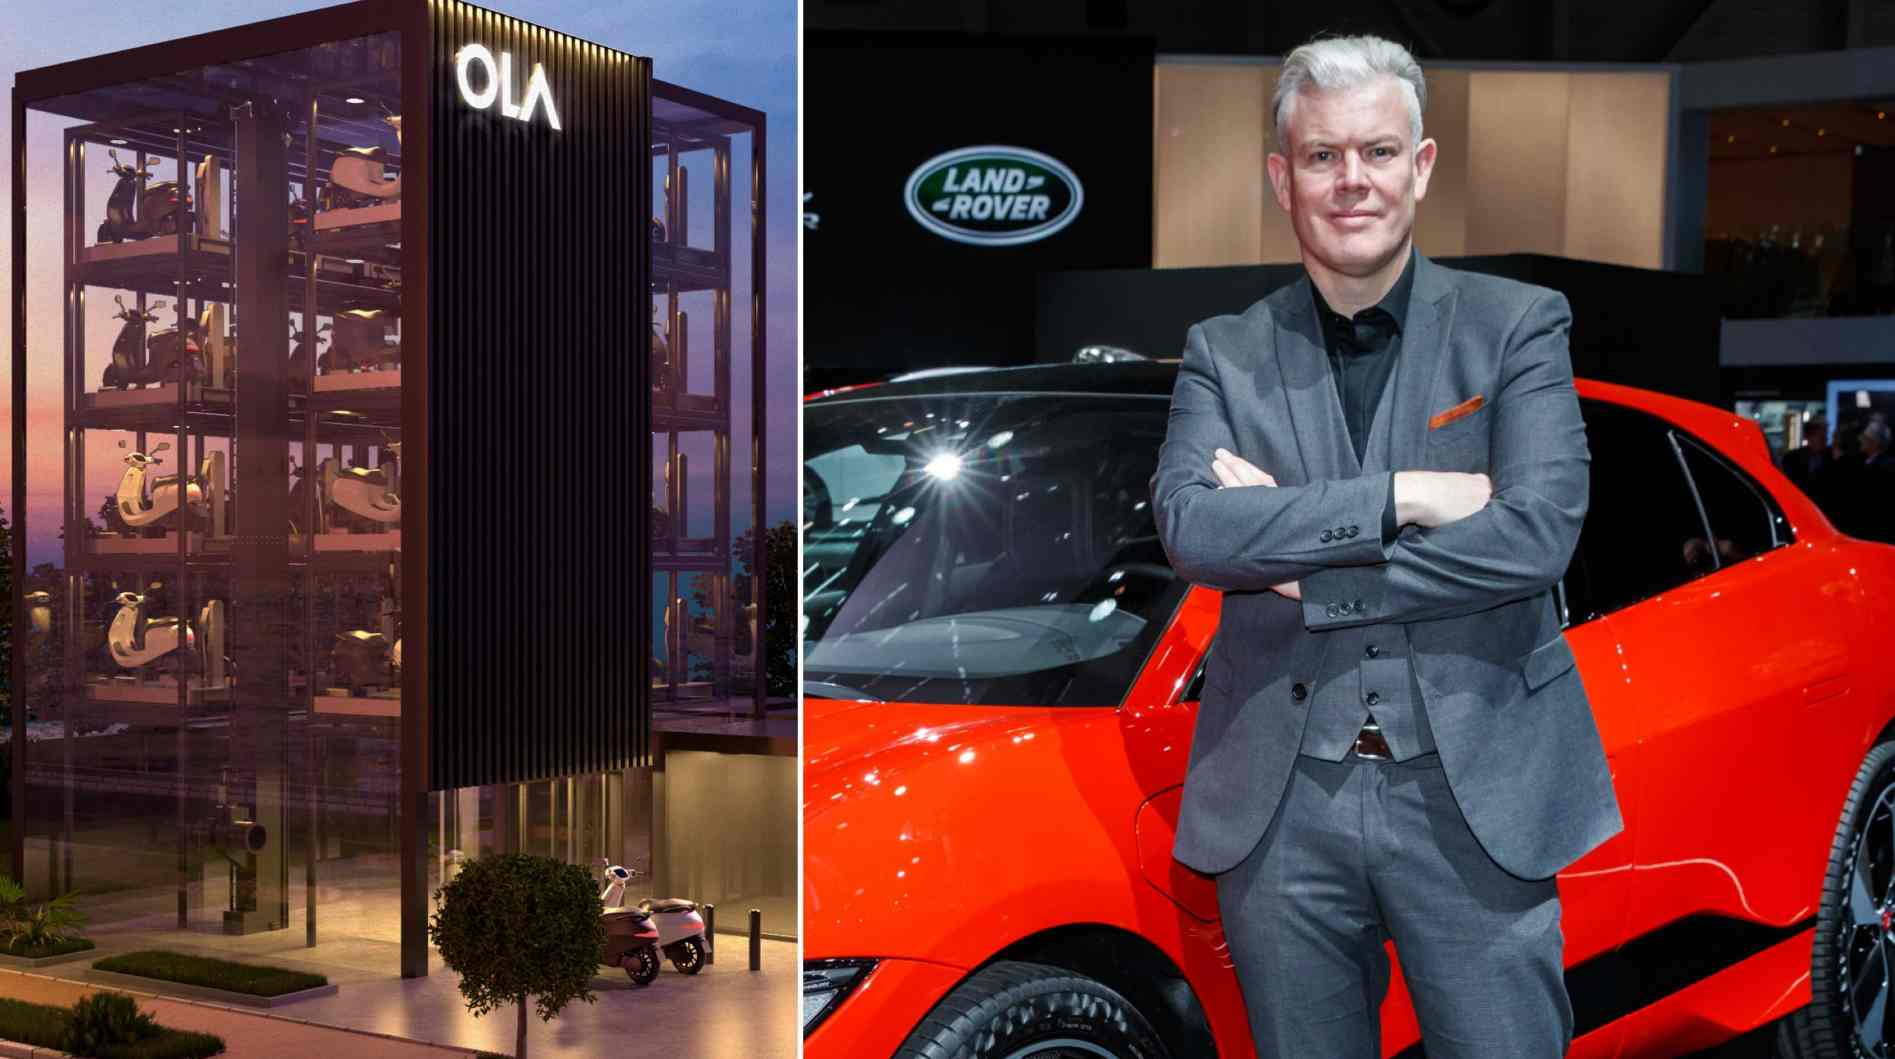 Burgess will lead the design process for Ola Electric's entire product range including scooters, bikes, cars and more, the company said in a statement. Image: Ola Electric/Jaguar/Tech2